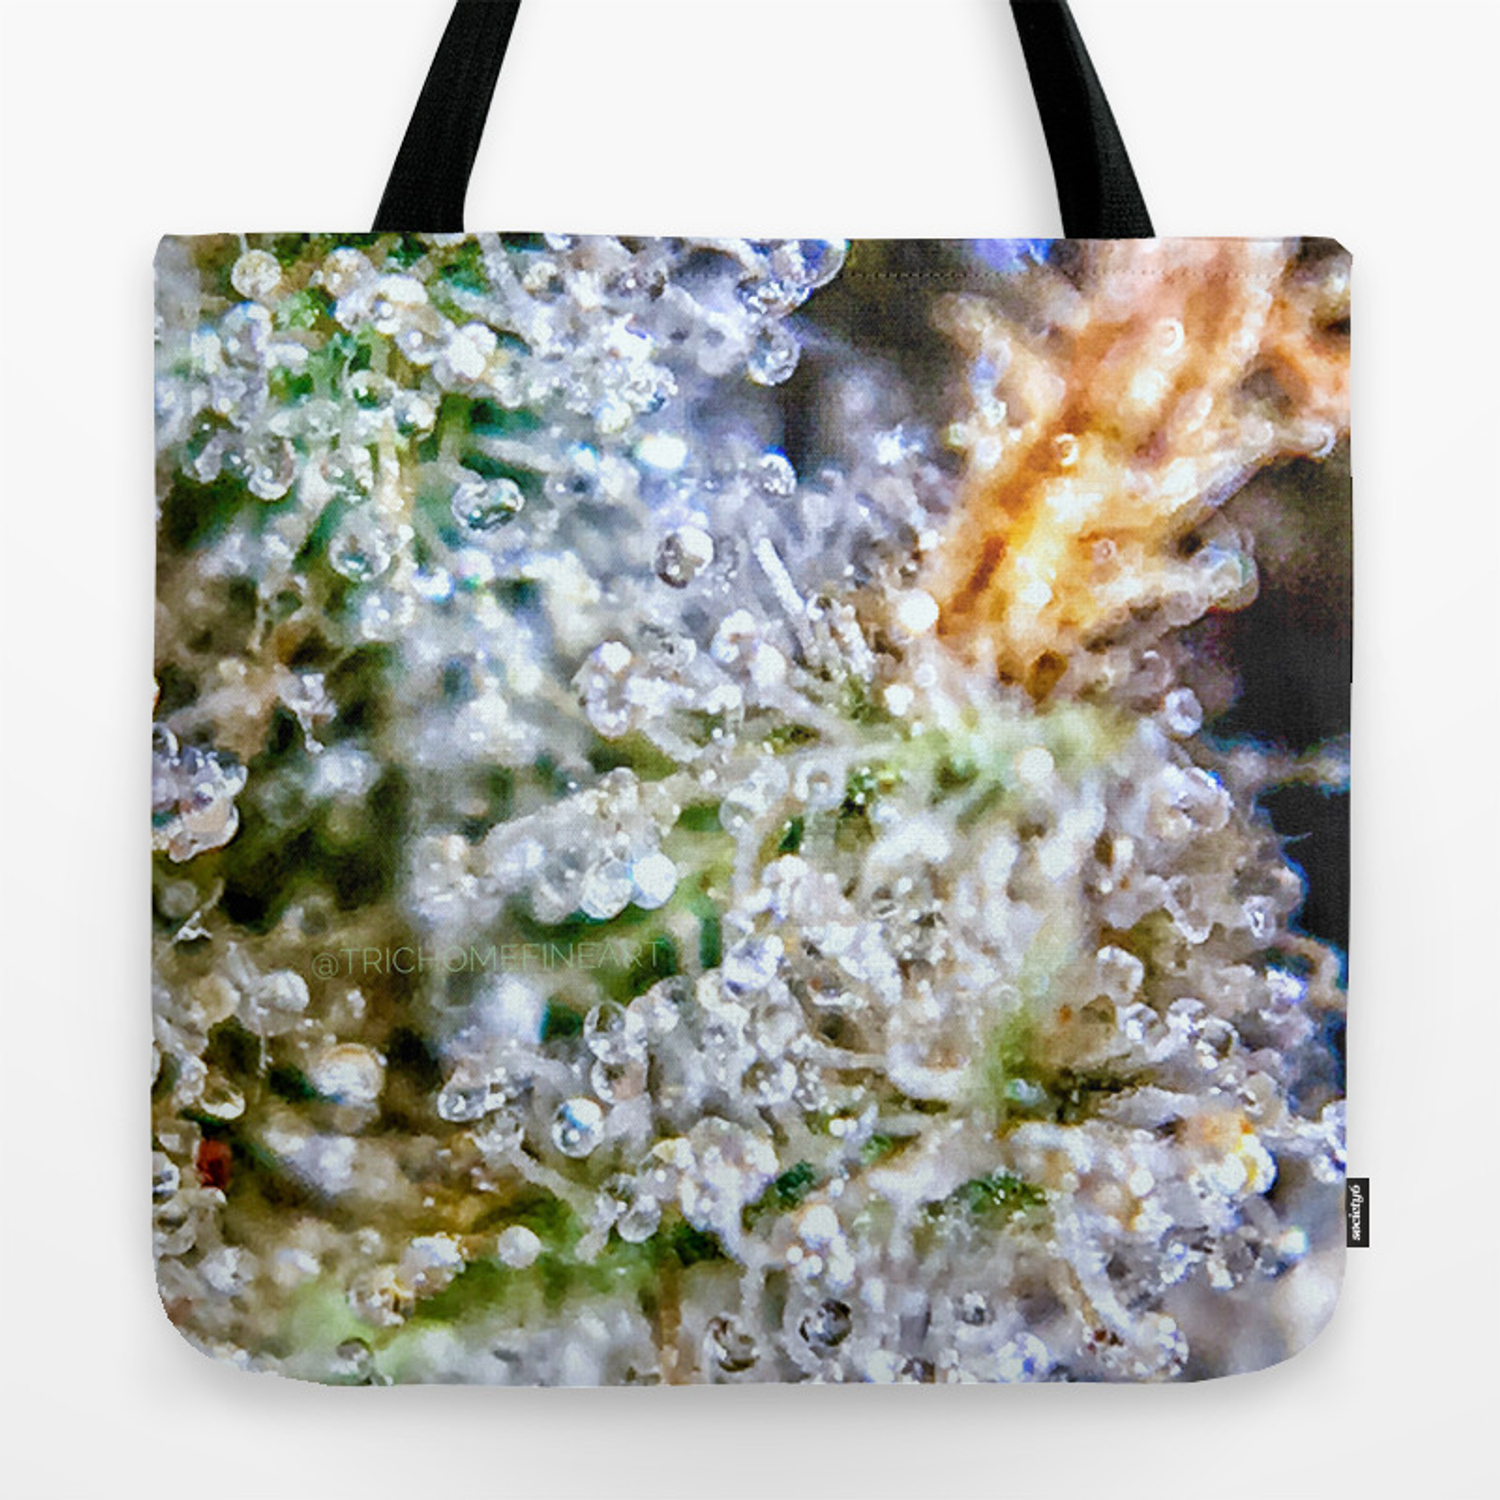 Gorilla Glue Trichomes Strain Indoor Hydro Private Reserve Buds Tote Bag